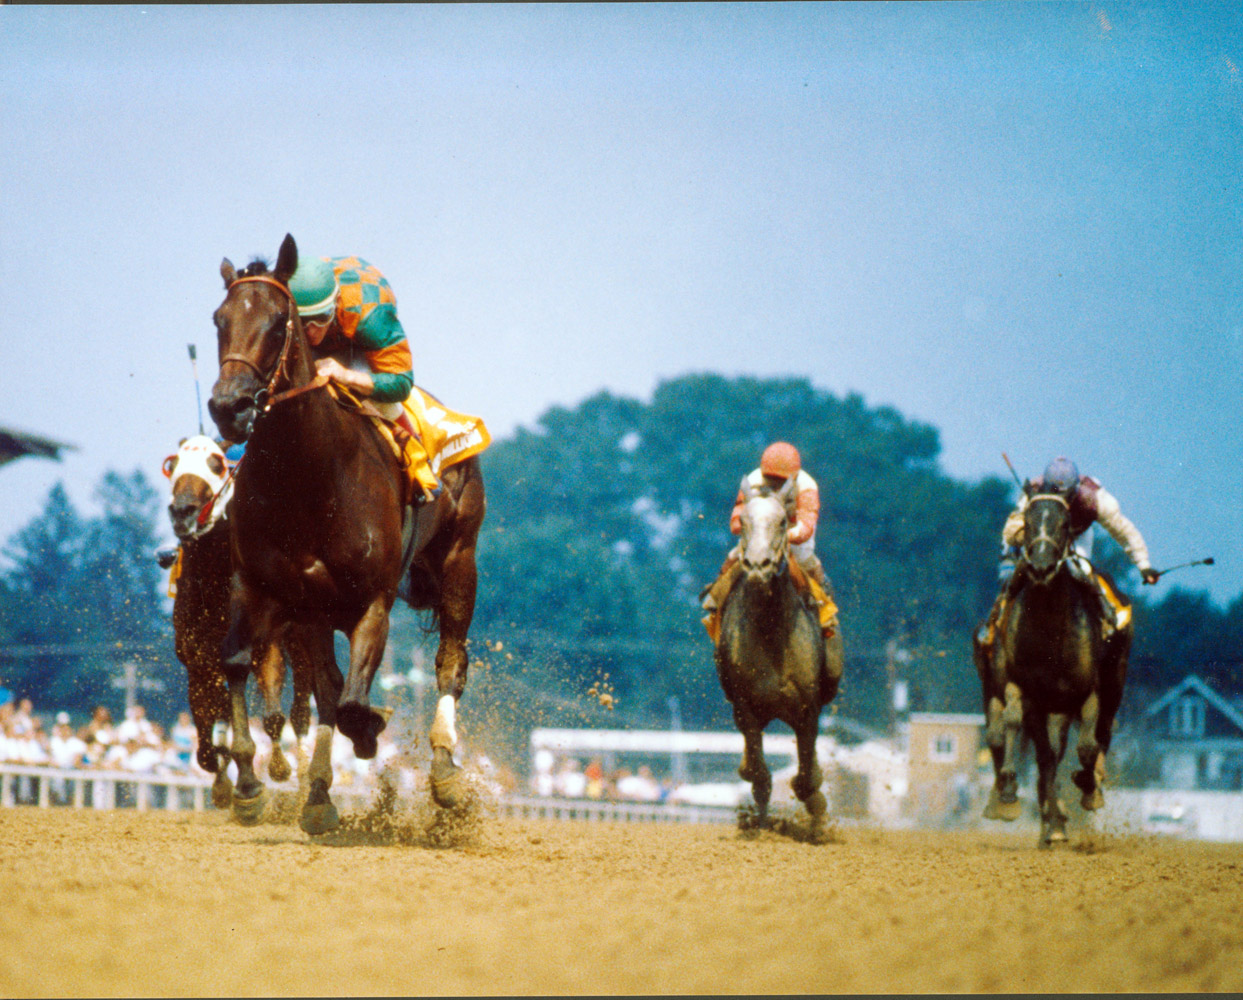 Safely Kept won the Genuine Risk Handicap, Maryland Million Distaff Handicap, and the Garden State Stakes Handicap three times each in her career (NYRA)